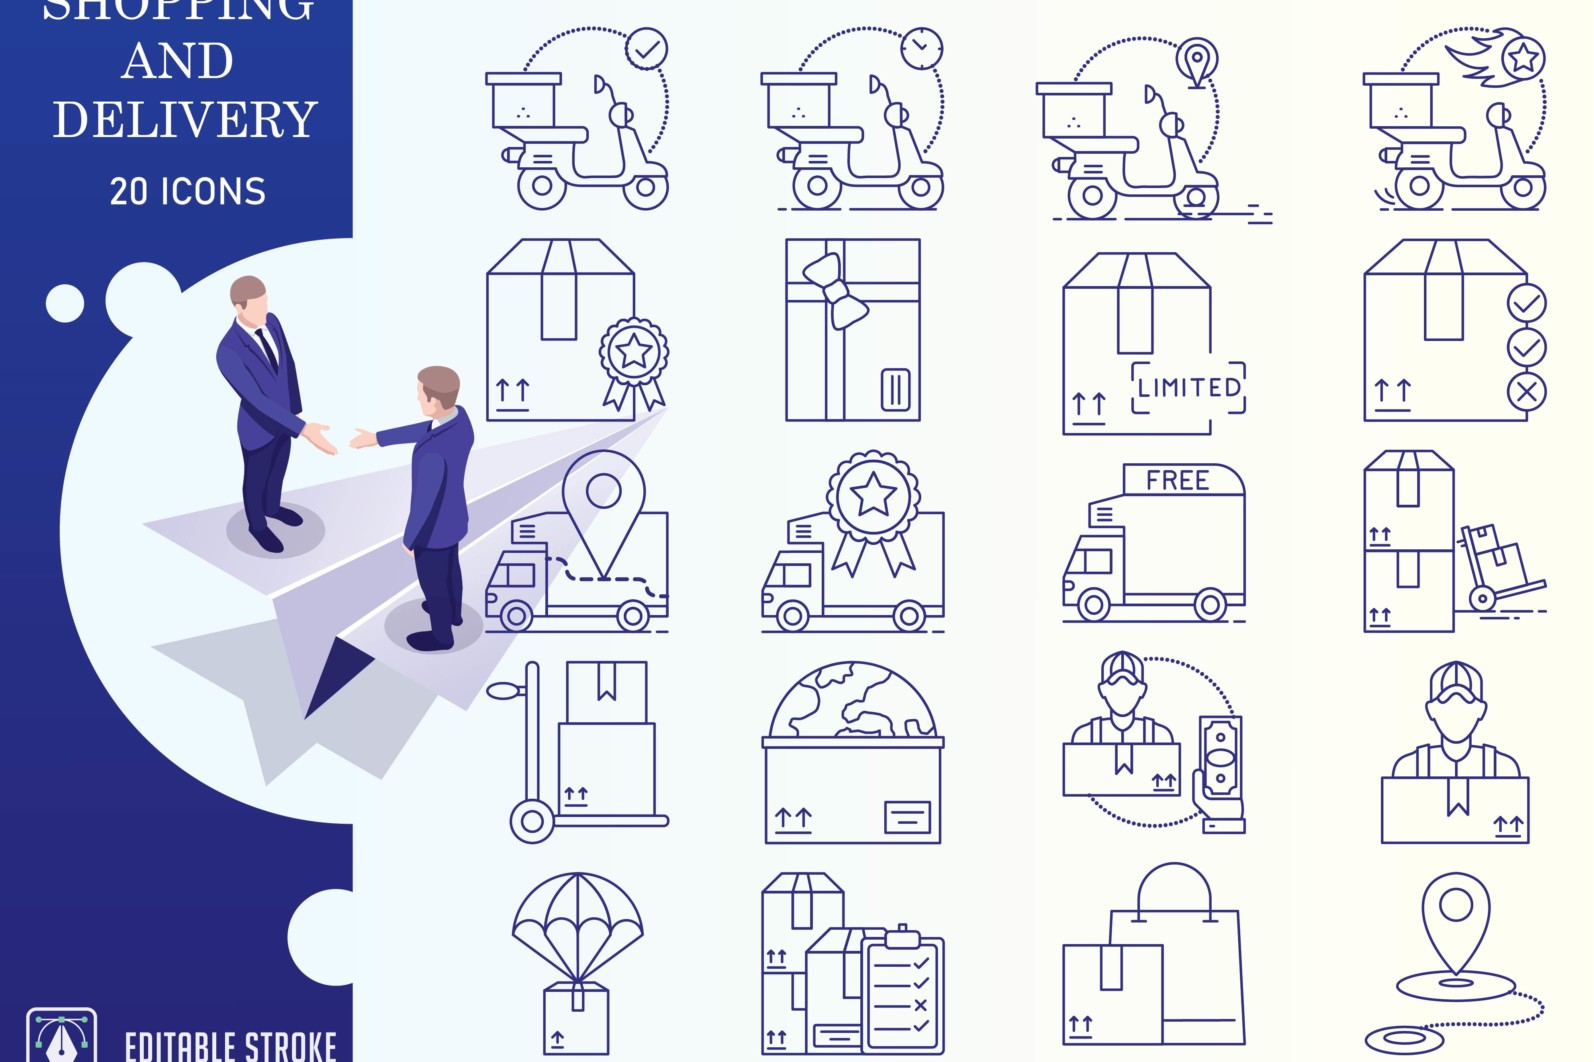 Outline : Shopping and E-commerce - Online Shopping Iconset 01 1 scaled -